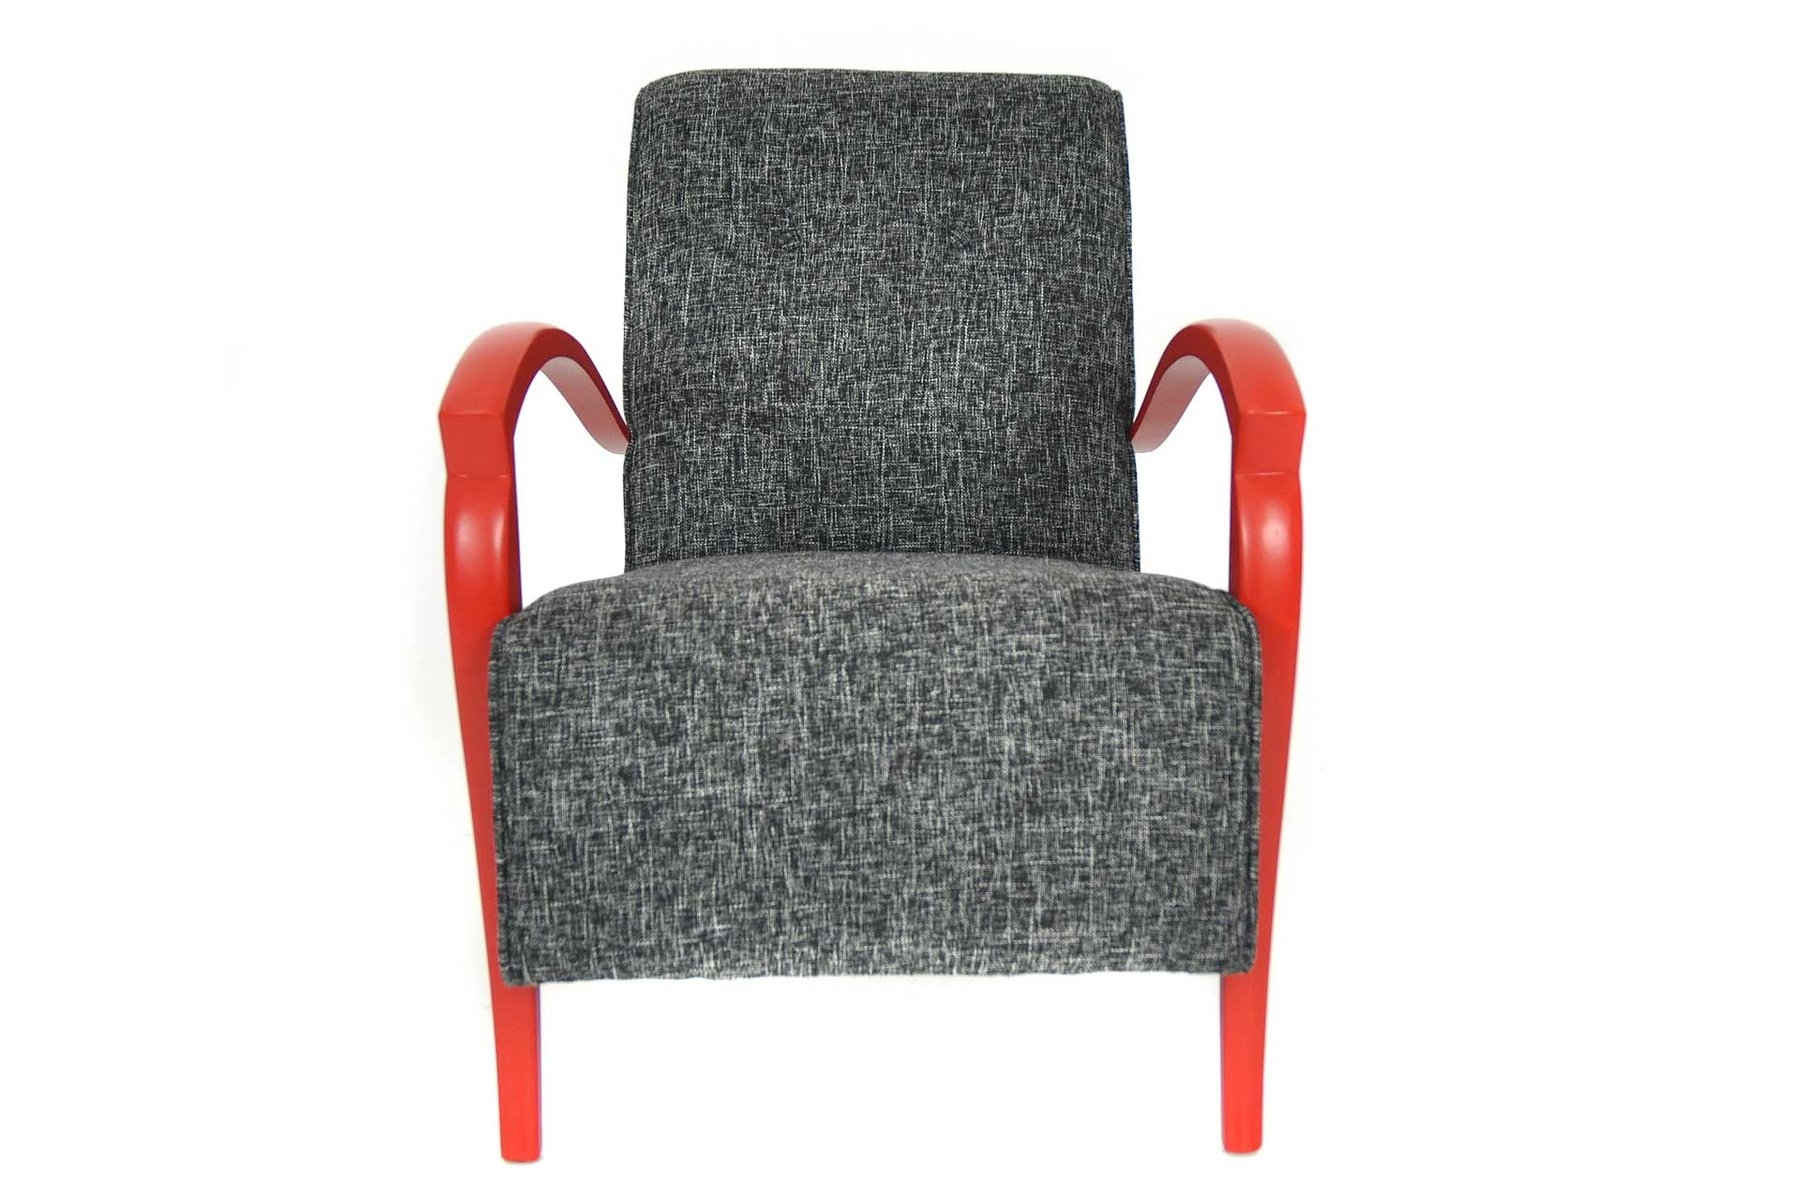 fauteuil rouge et gris france 1950s en vente sur pamono. Black Bedroom Furniture Sets. Home Design Ideas